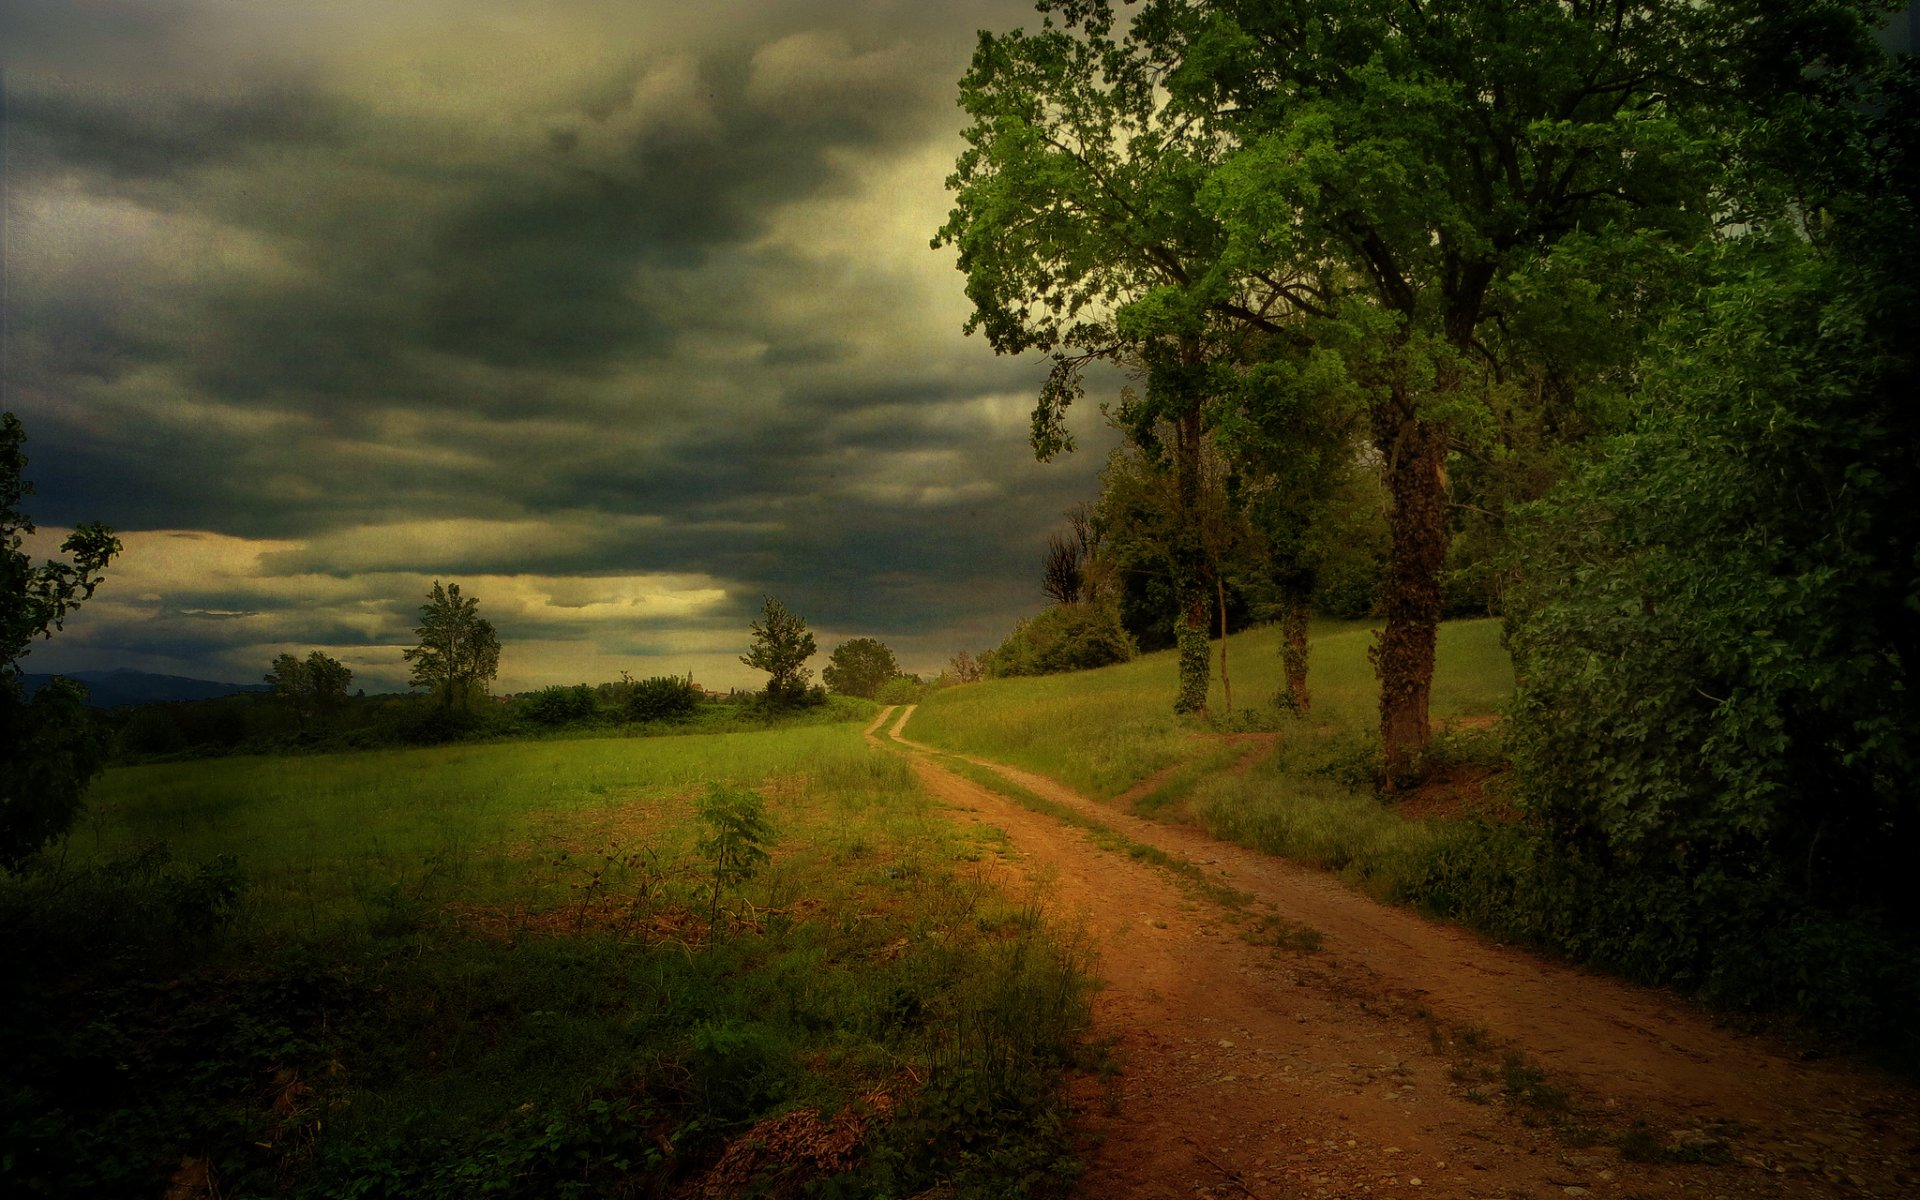 Girls Corn Wallpaper Storm Dirty Road Trees Plants Wallpapers Storm Dirty